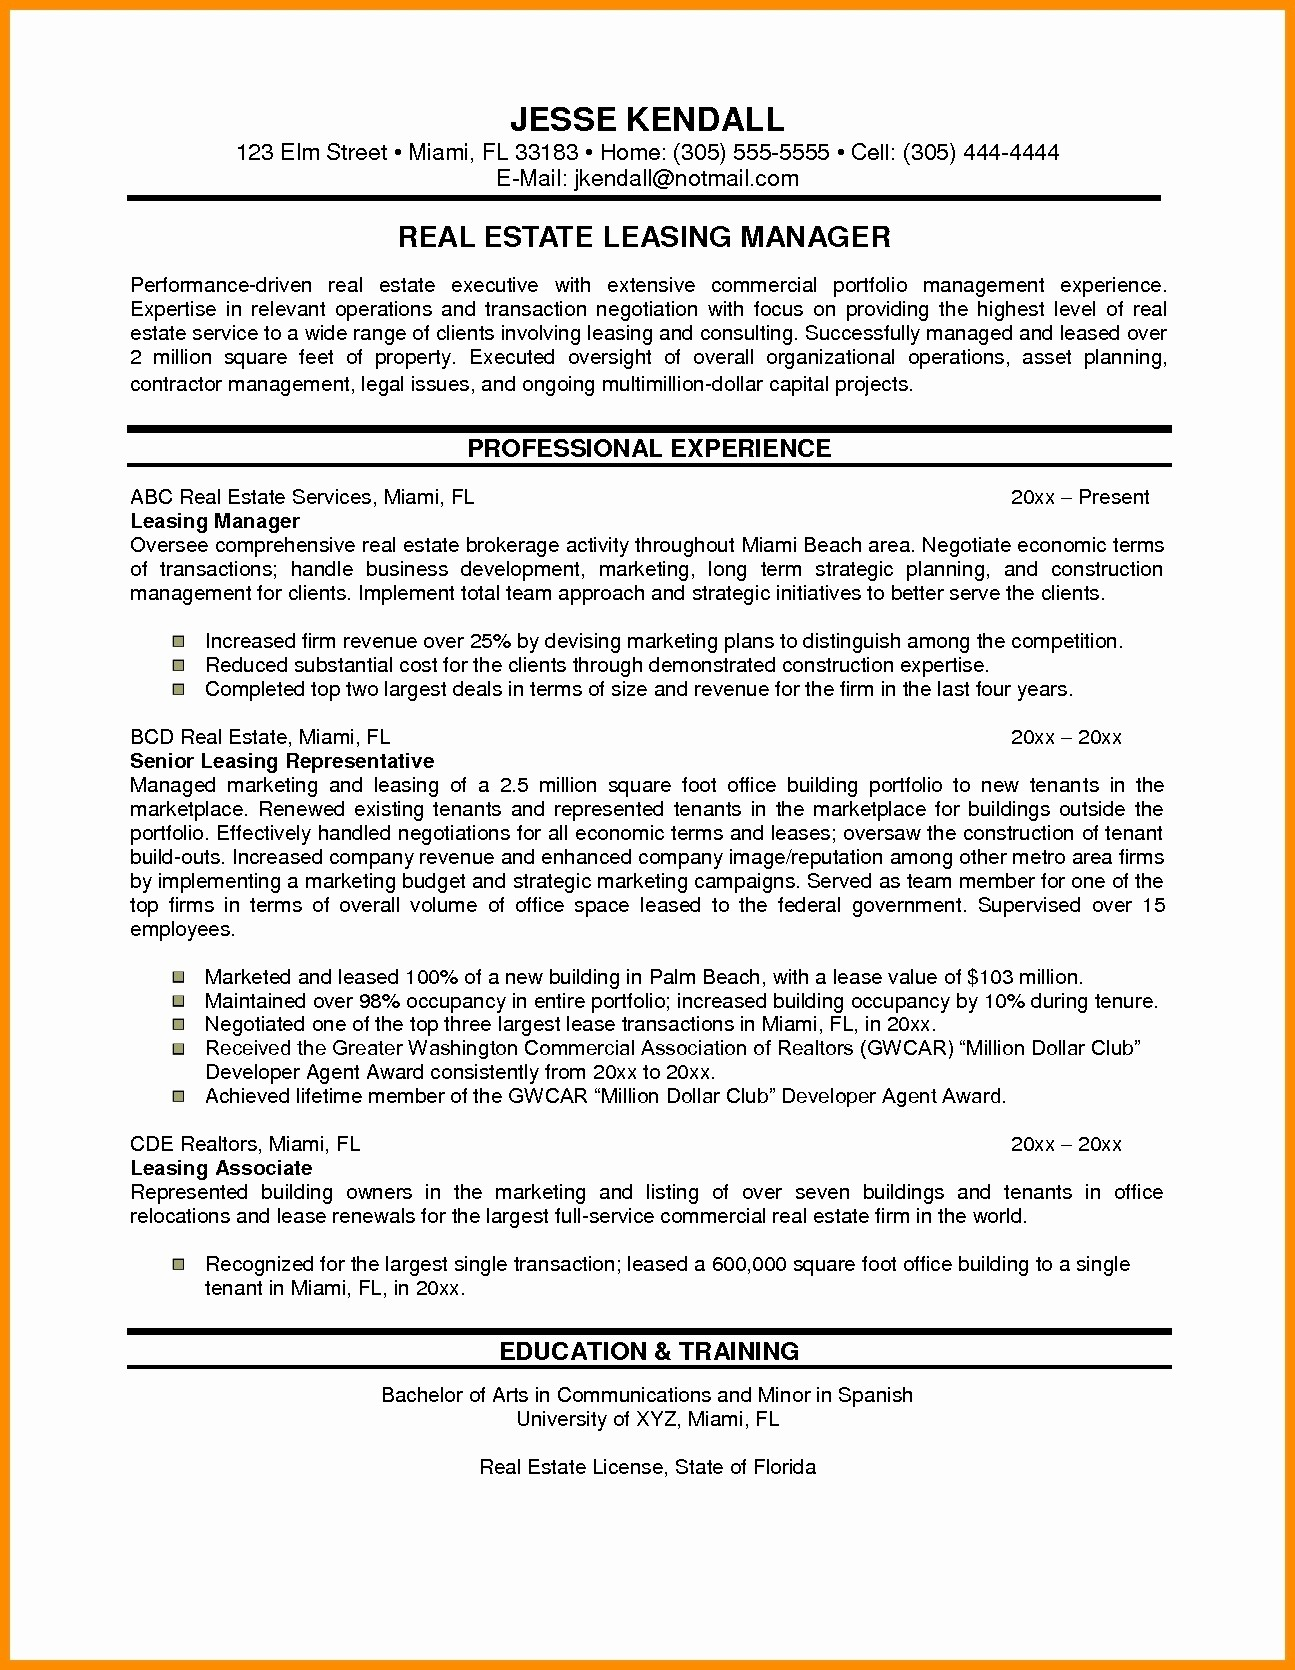 Performance Resume - Real Estate attorney Resume New Sample Resume for Property Manager